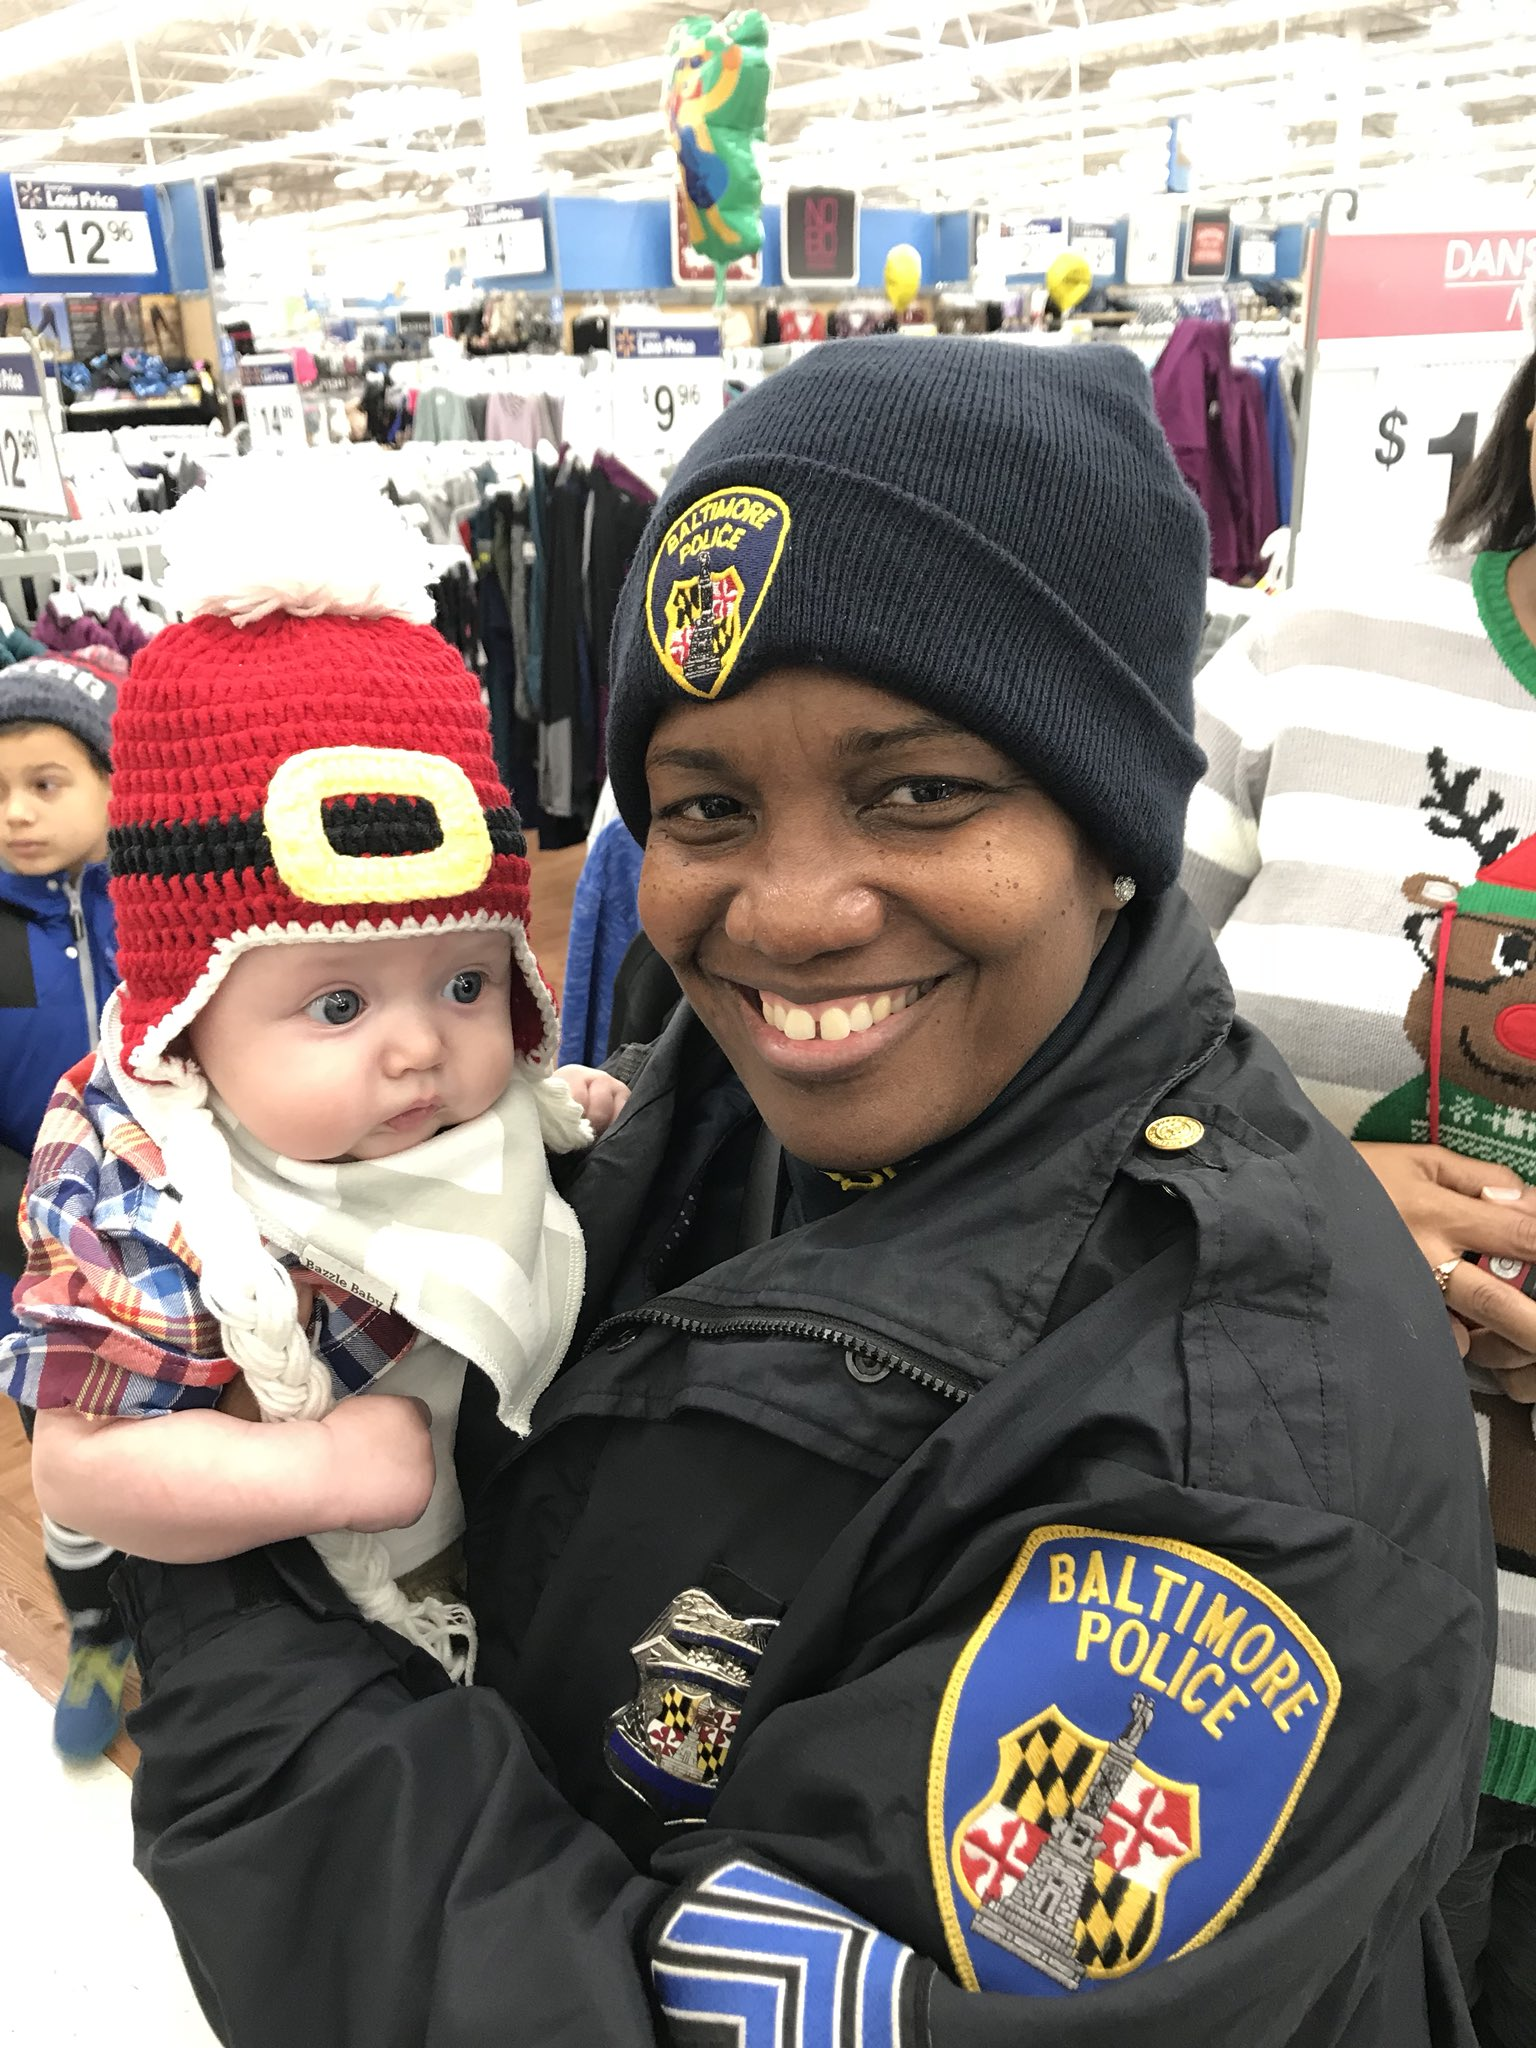 Baltimore Police Shop With A Cop; photo courtesy of Baltimore Police Department{&amp;nbsp;}<p></p>